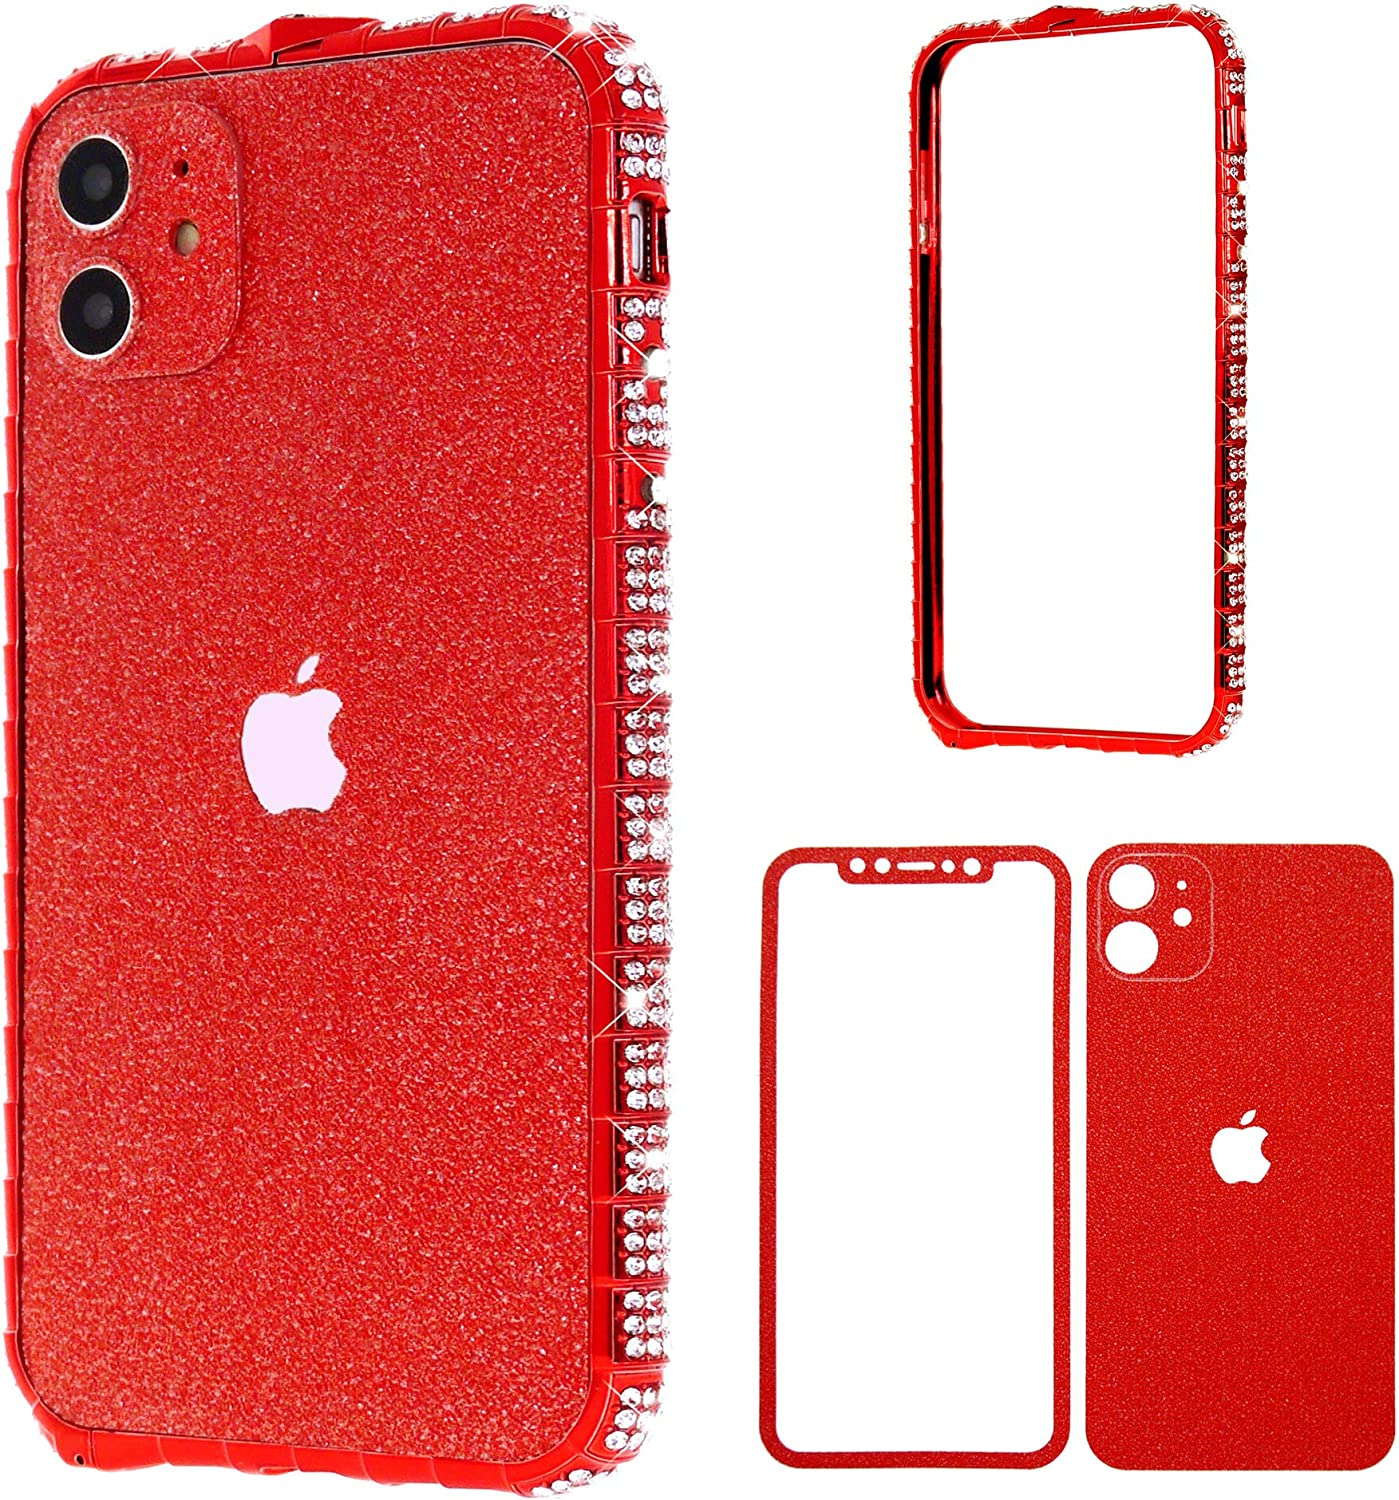 iPhone 11 Pro Max Diamond Bumper for Women, DMaos Sparkly Rhinestone Metal Bumper with Front and Back Glitter Sticker, Luxury for iPhone11 Pro Max 6.5 inch 2019 - Red